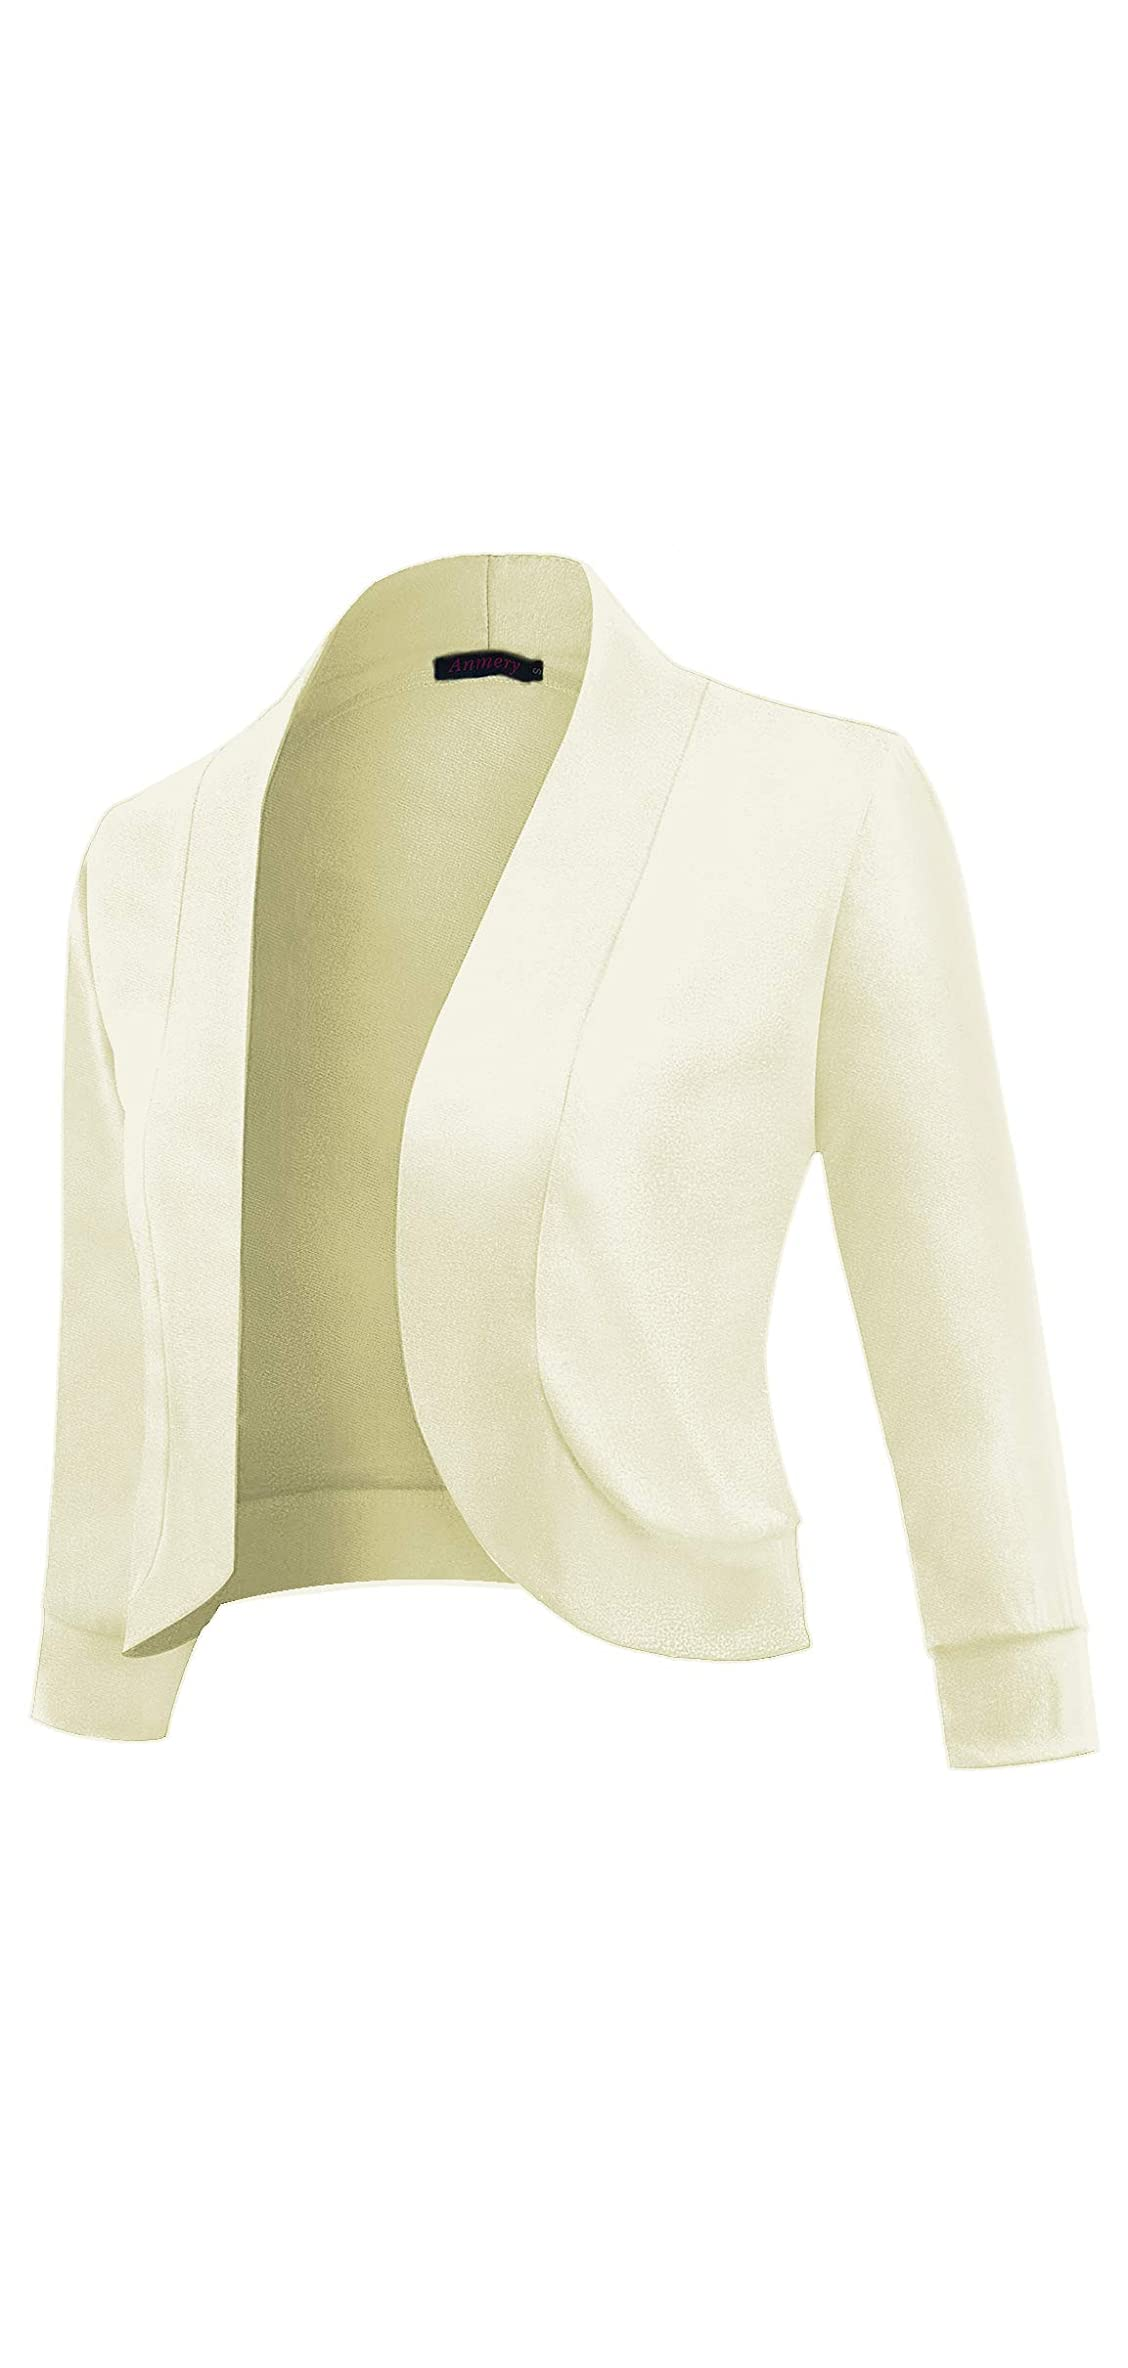 Womens / Sleeve Short Cardigan Slim Fitted Cropped Open